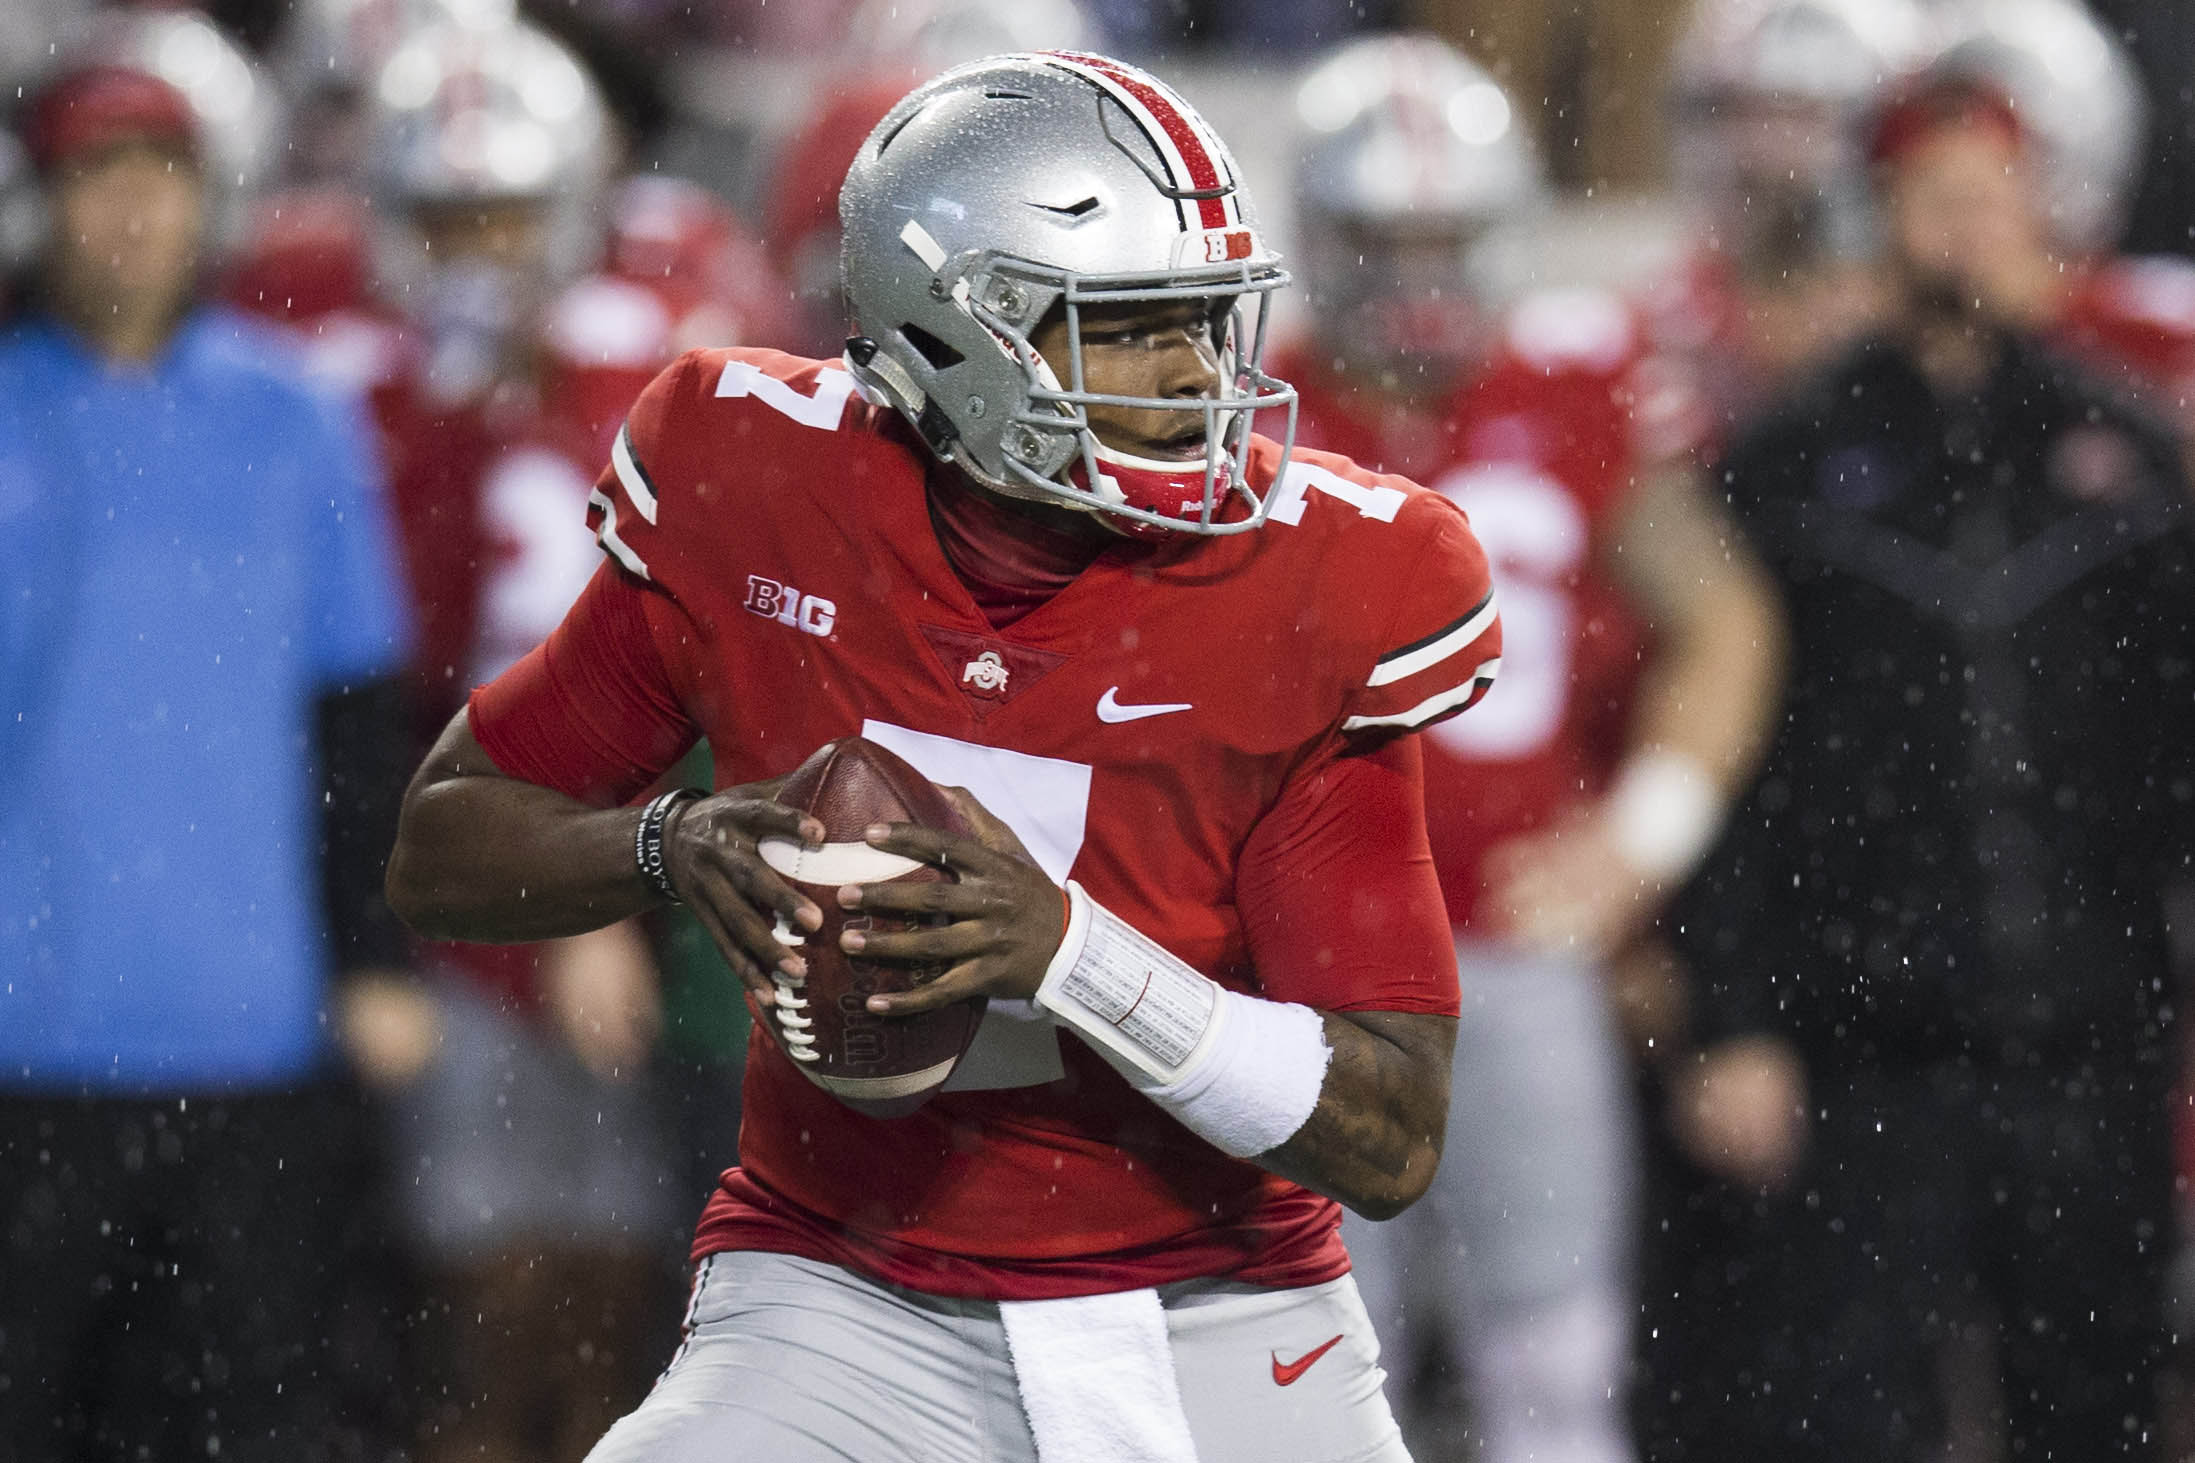 reputable site 27fa5 8afd2 Dwayne Haskins claps back at Shareef Miller after 'folding ...